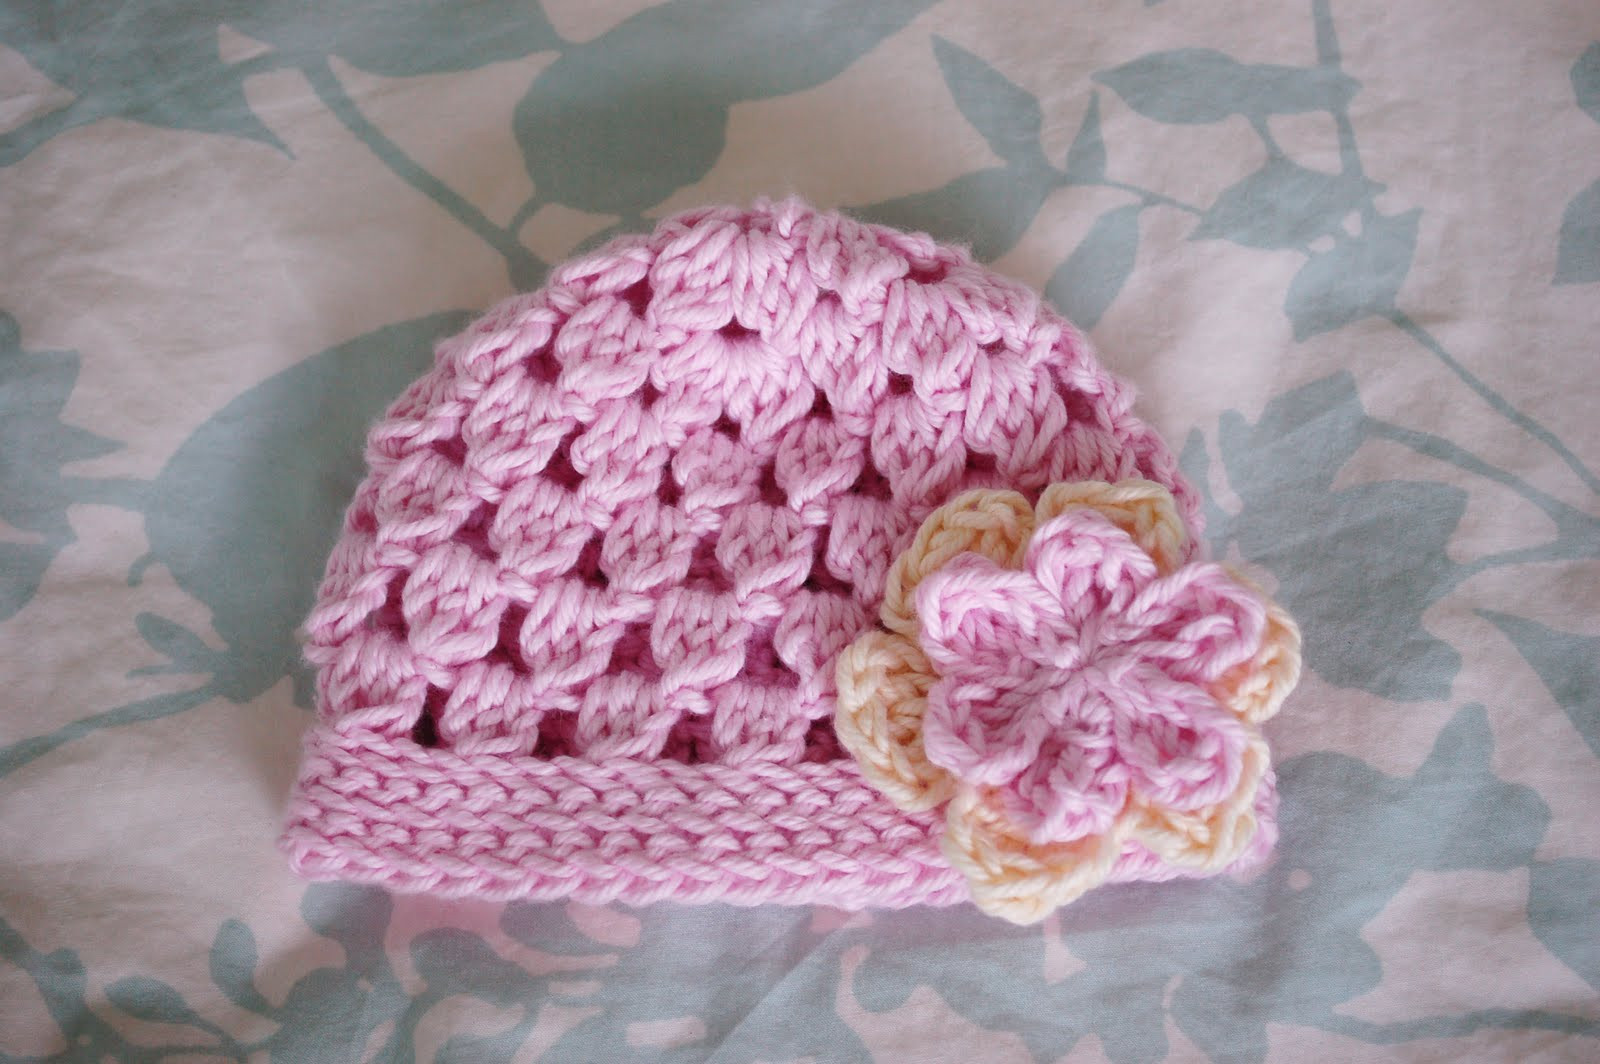 Newborn Baby Hat Crochet Pattern Inspirational Crochet Patterns Baby Beanie Of Superb 44 Pictures Newborn Baby Hat Crochet Pattern